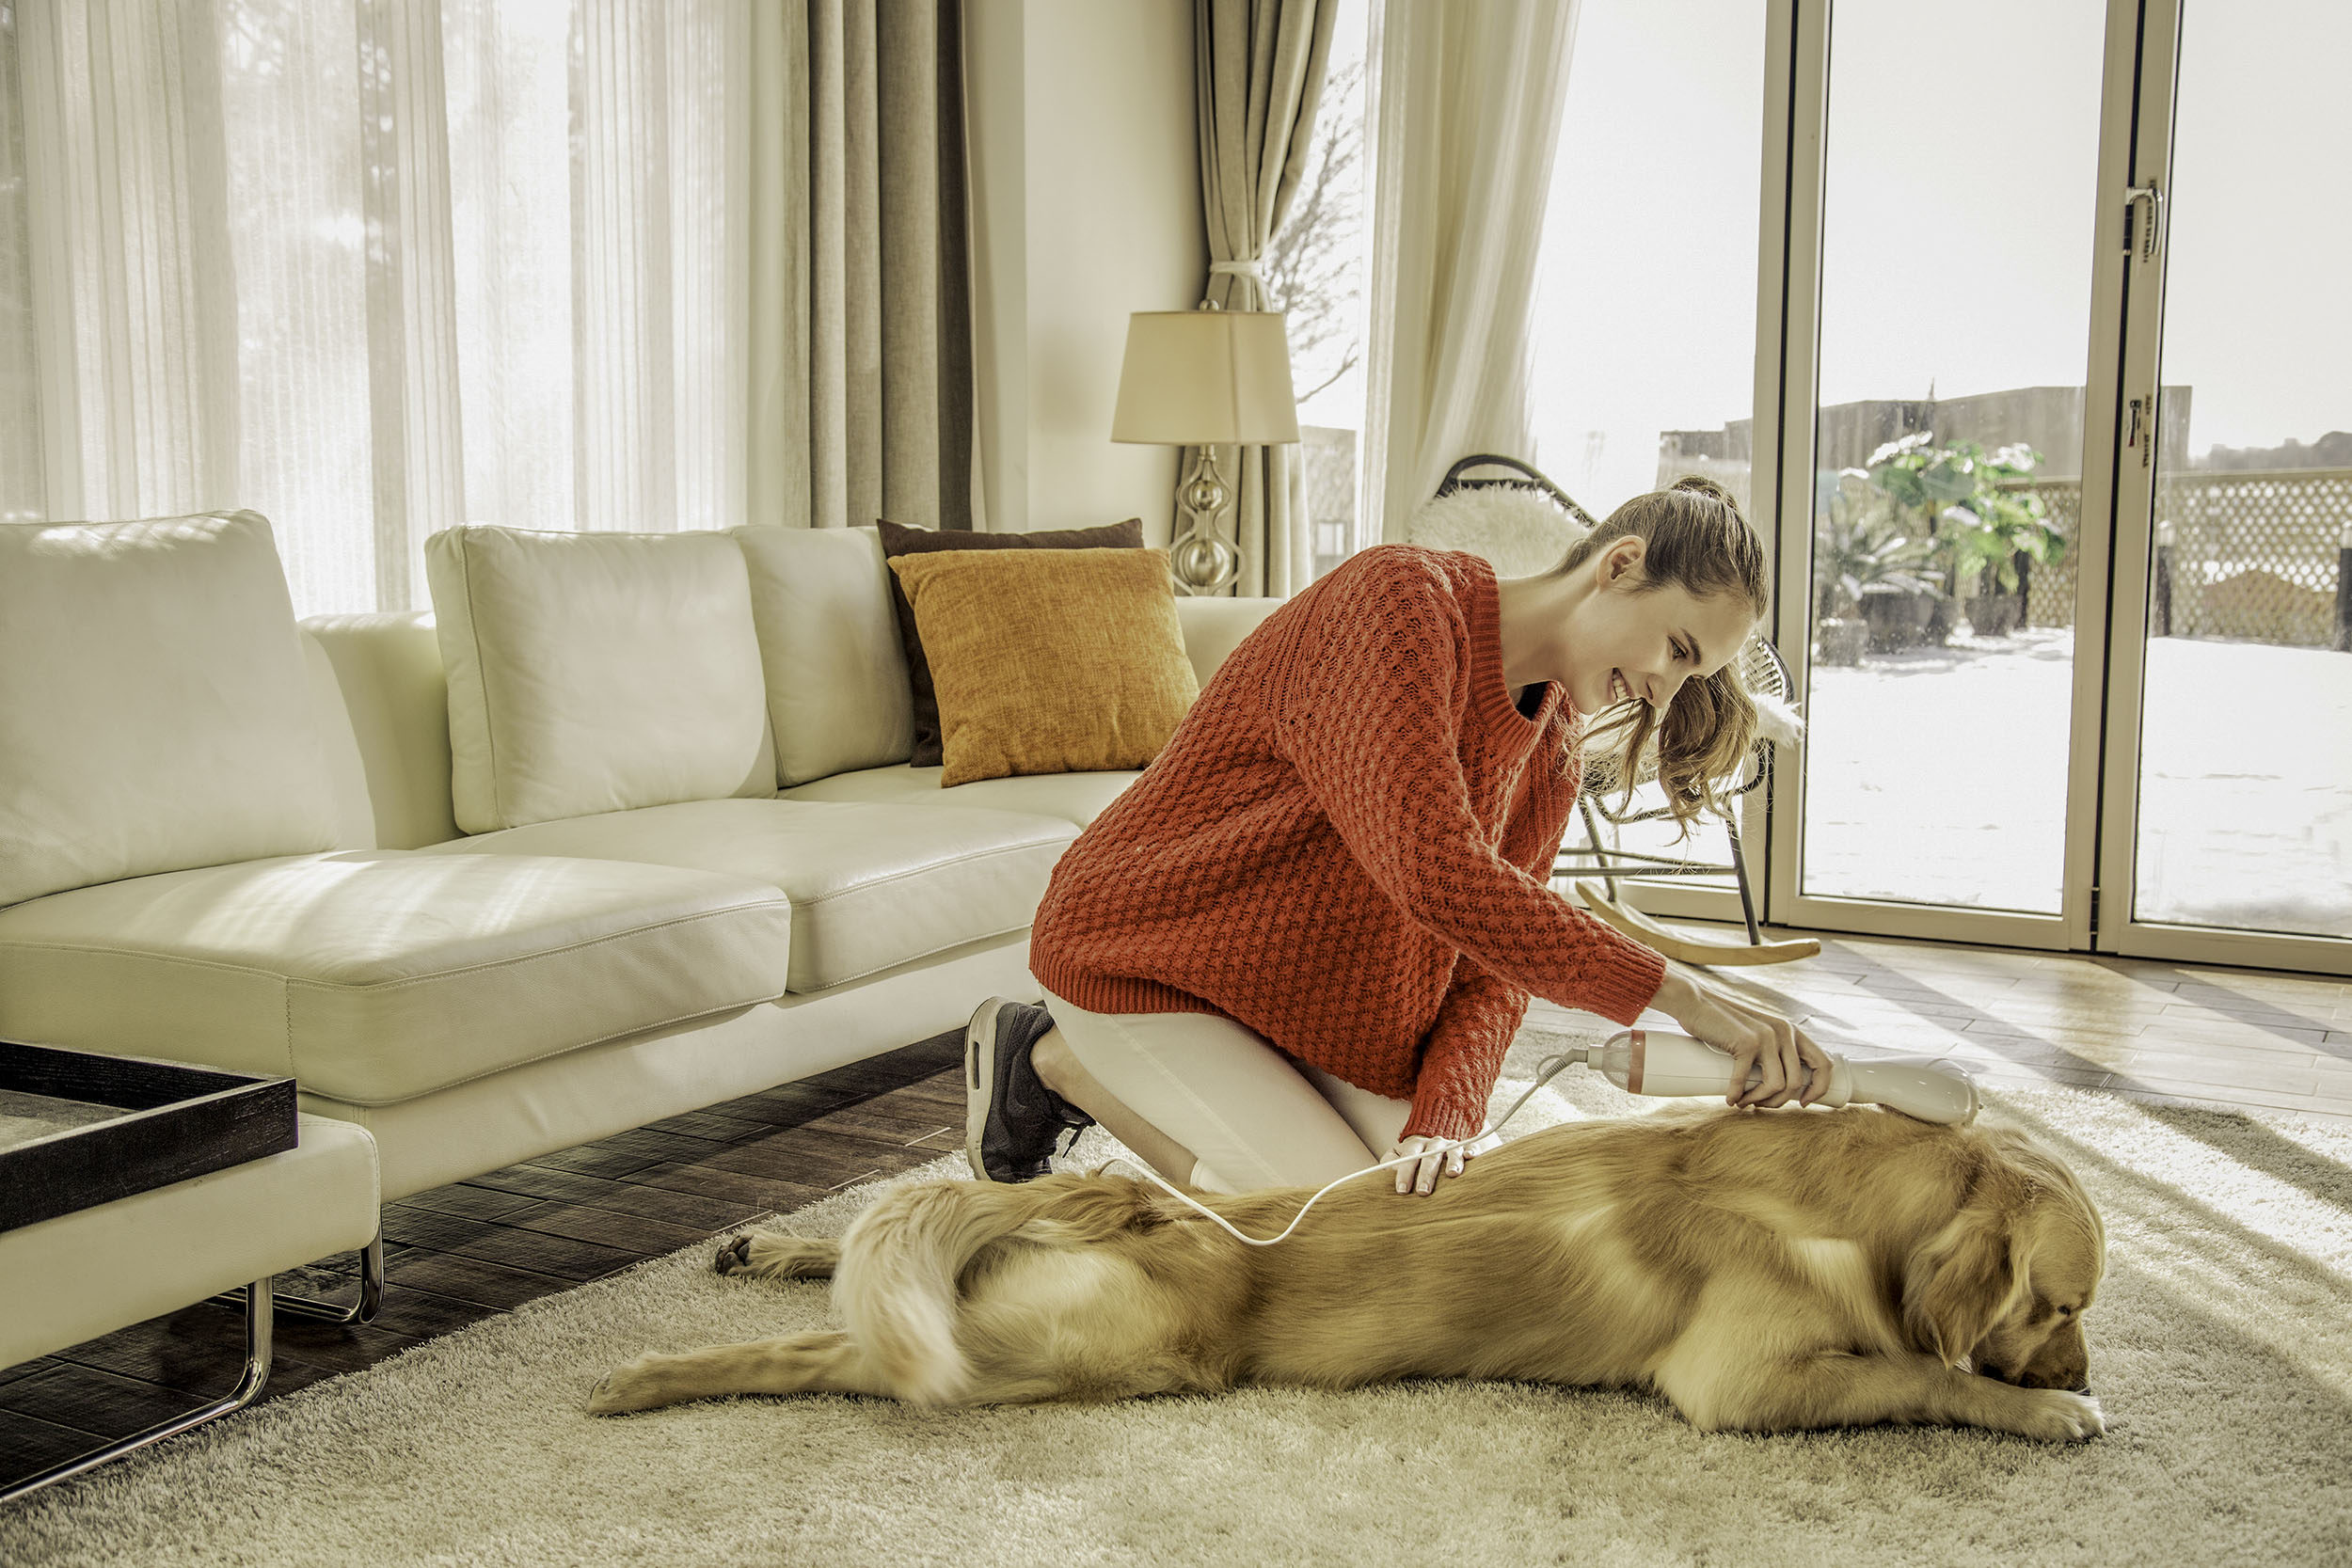 Enjoy stress-free grooming time with your furry friend!